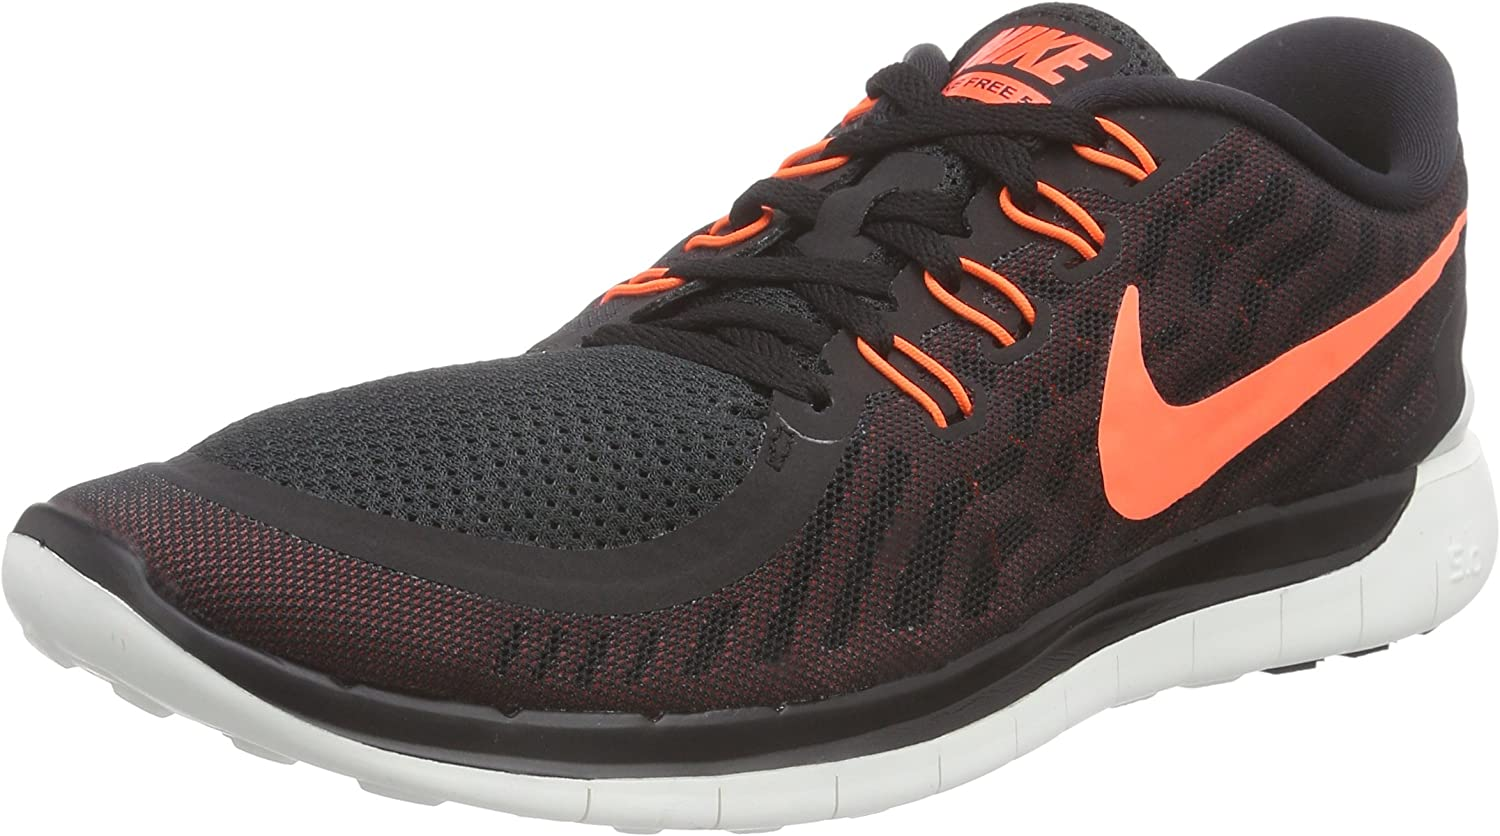 amante carencia puerta  Amazon.com | Nike Men's Free 5.0 Running/Training Shoes | Road Running